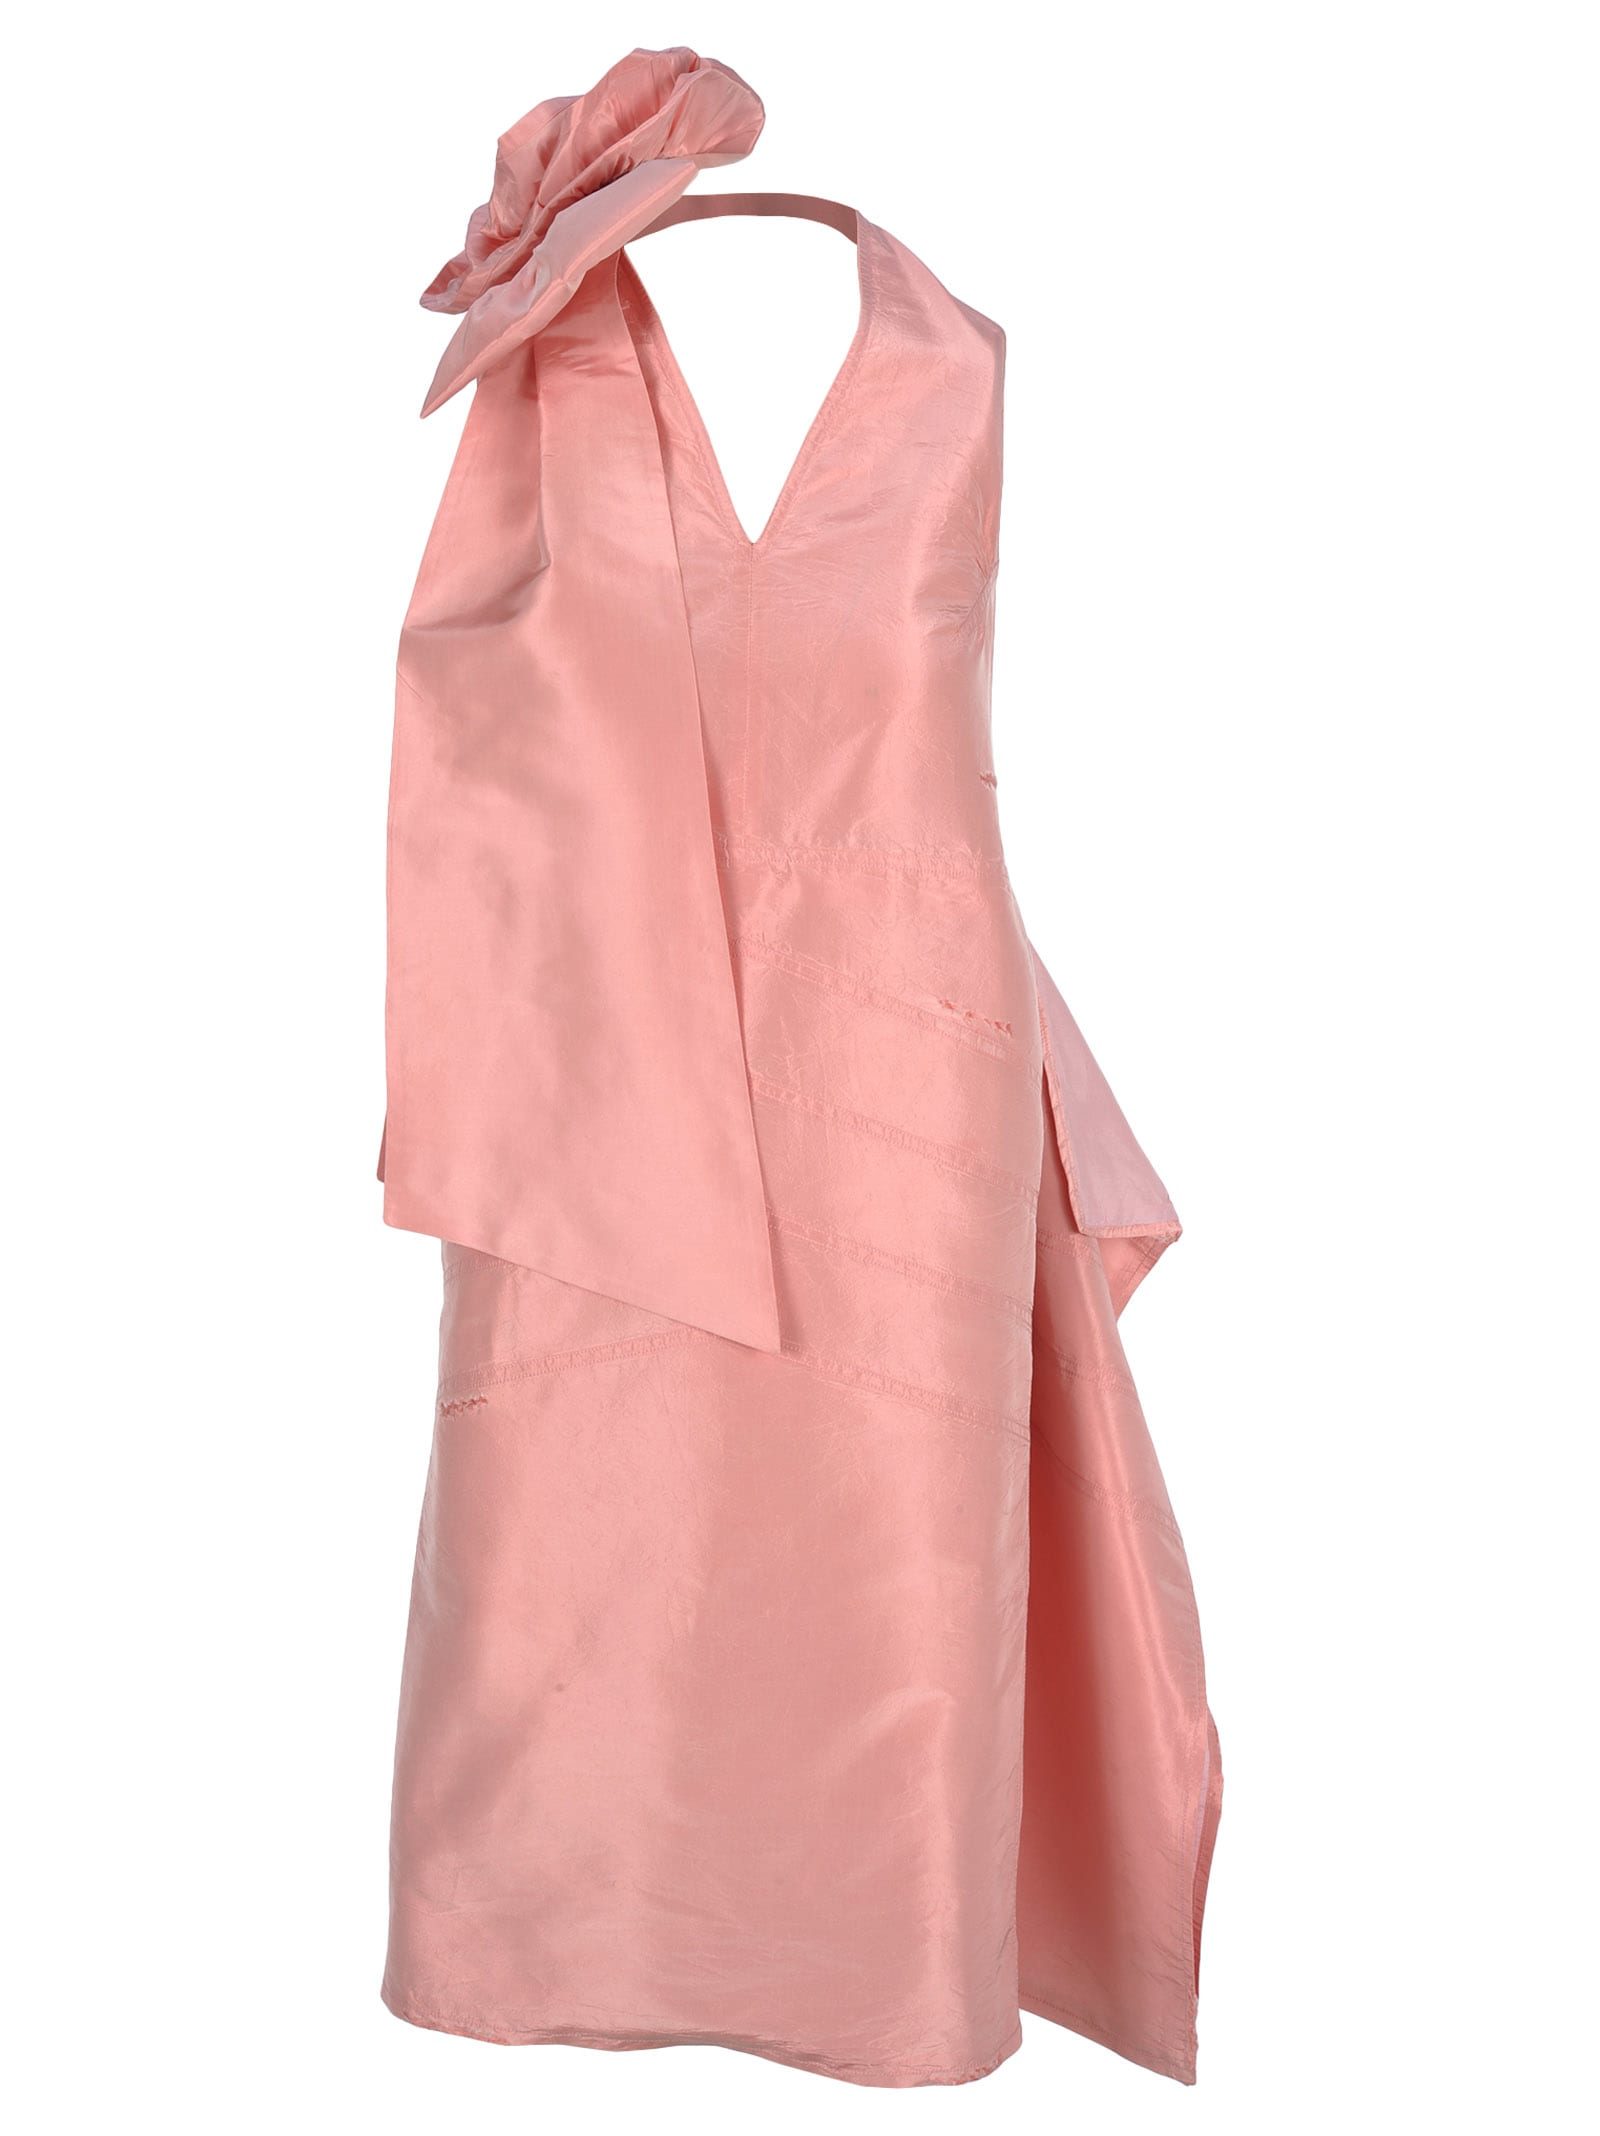 Miu Miu Miu Miu Rose Appliqué Silk-taffeta Dress